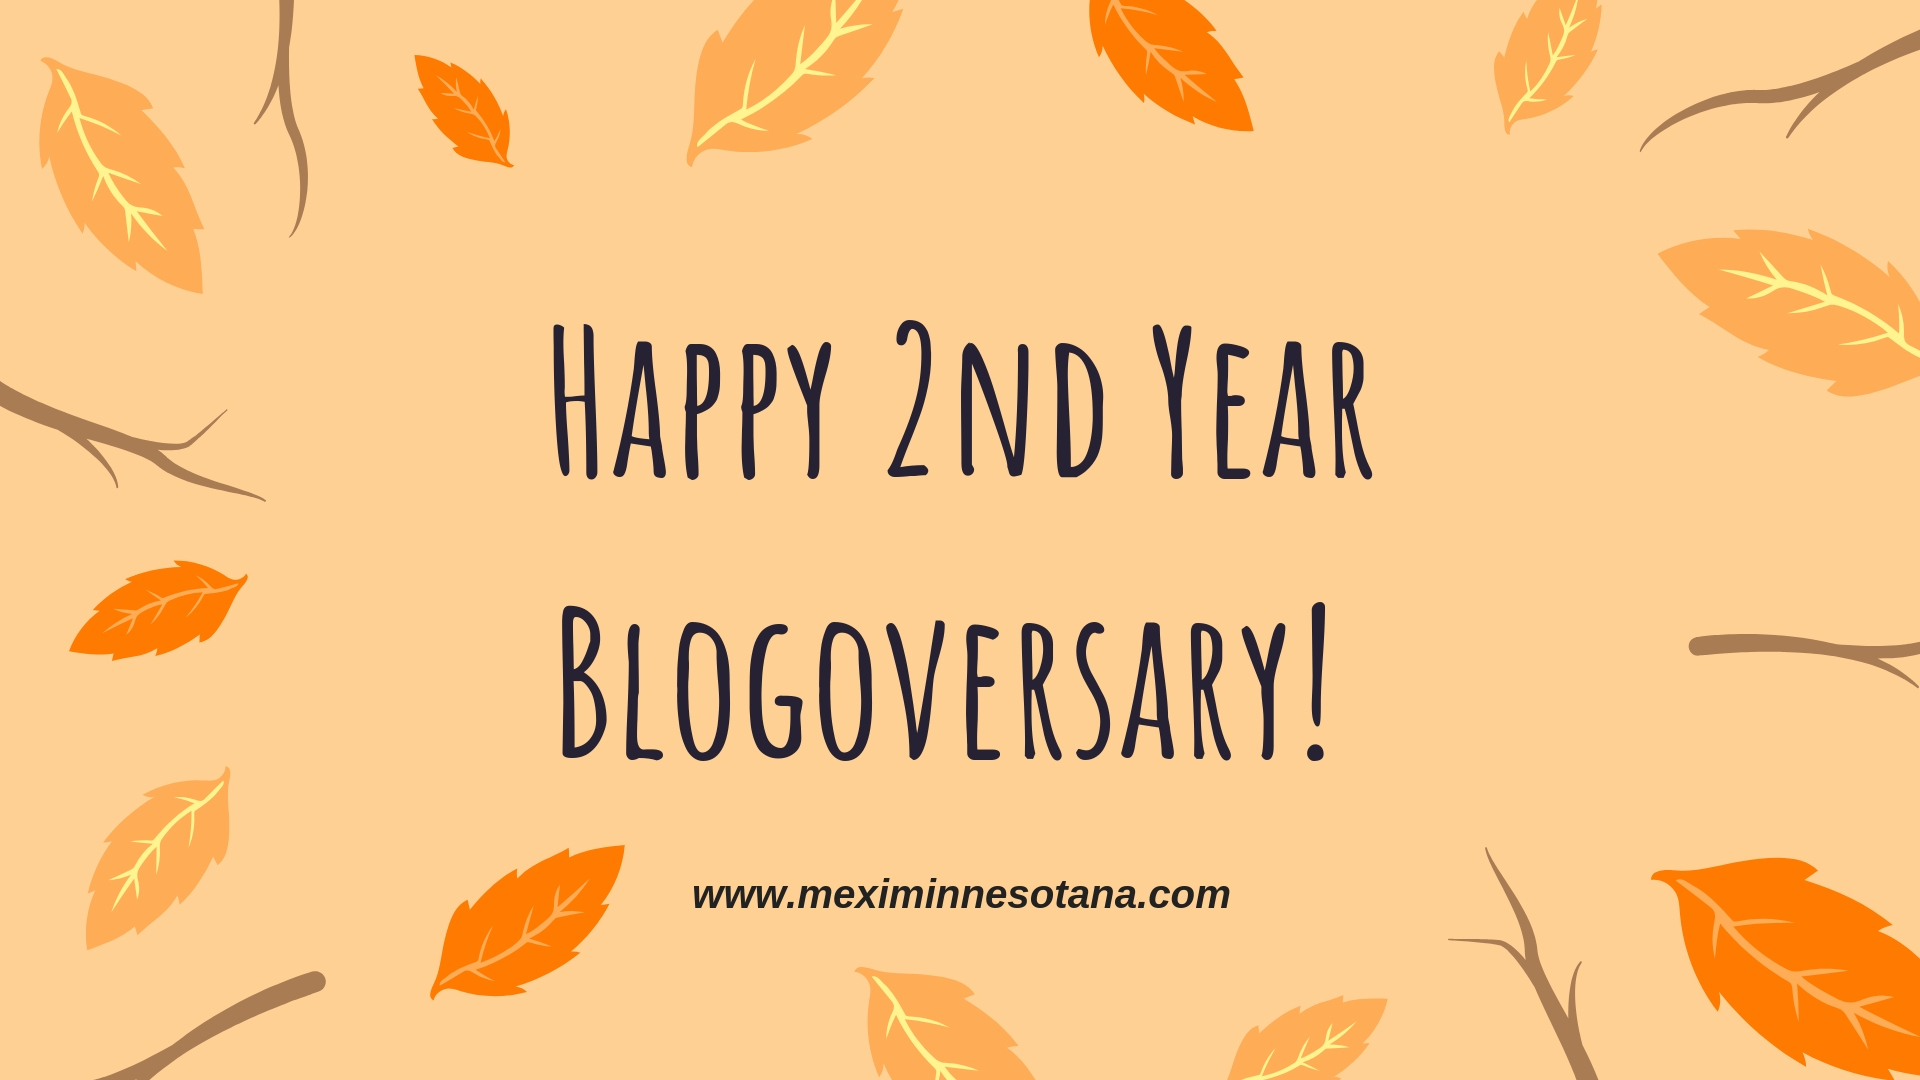 2nd year blogoversary.jpg